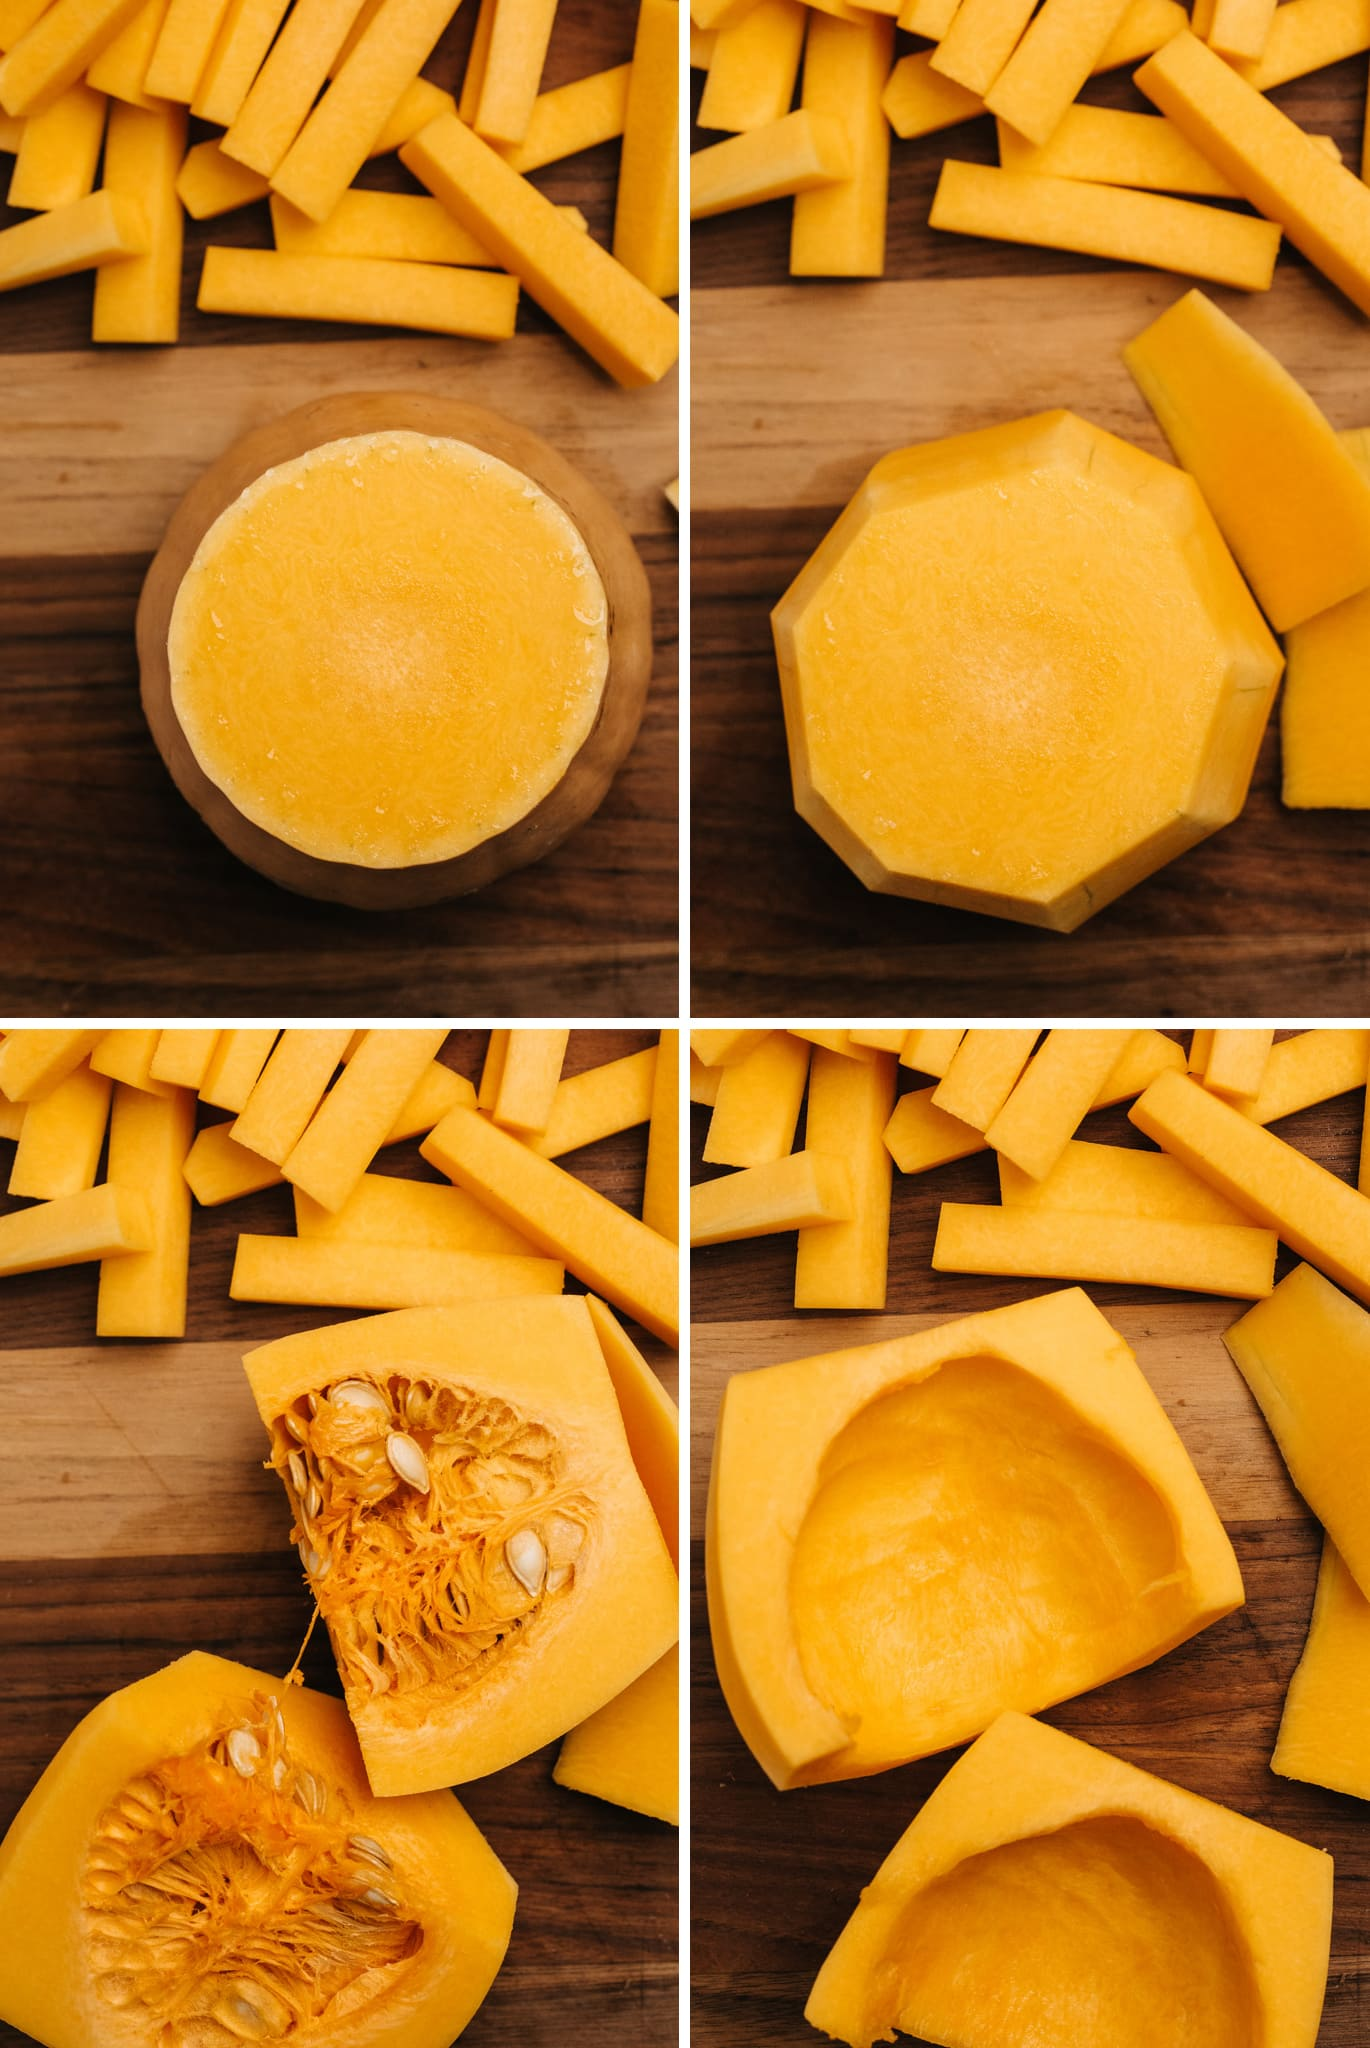 A collage showing how to cut a butternut squash to make fry shapes.